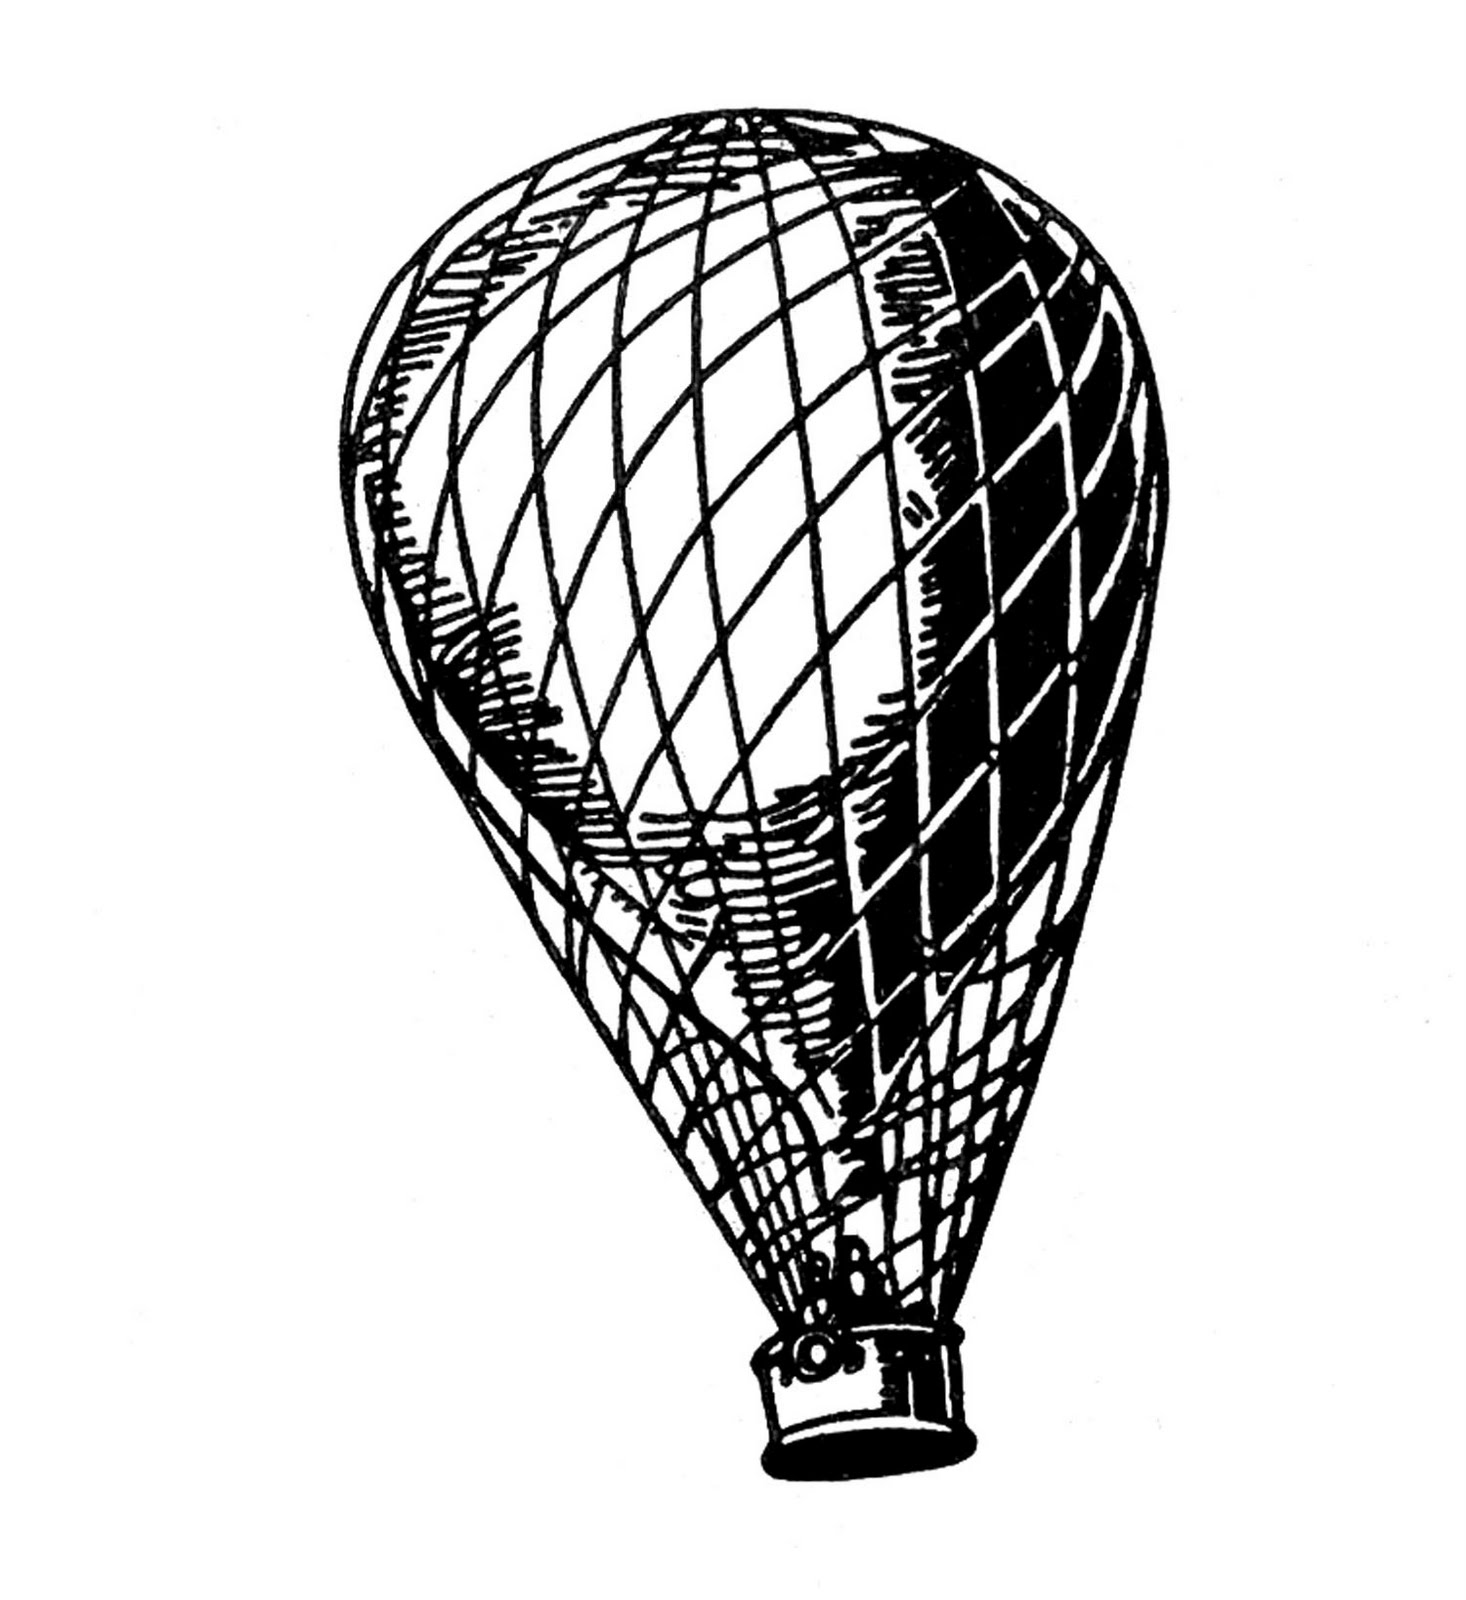 Vintage clip art transportation balloon airship aeroplane